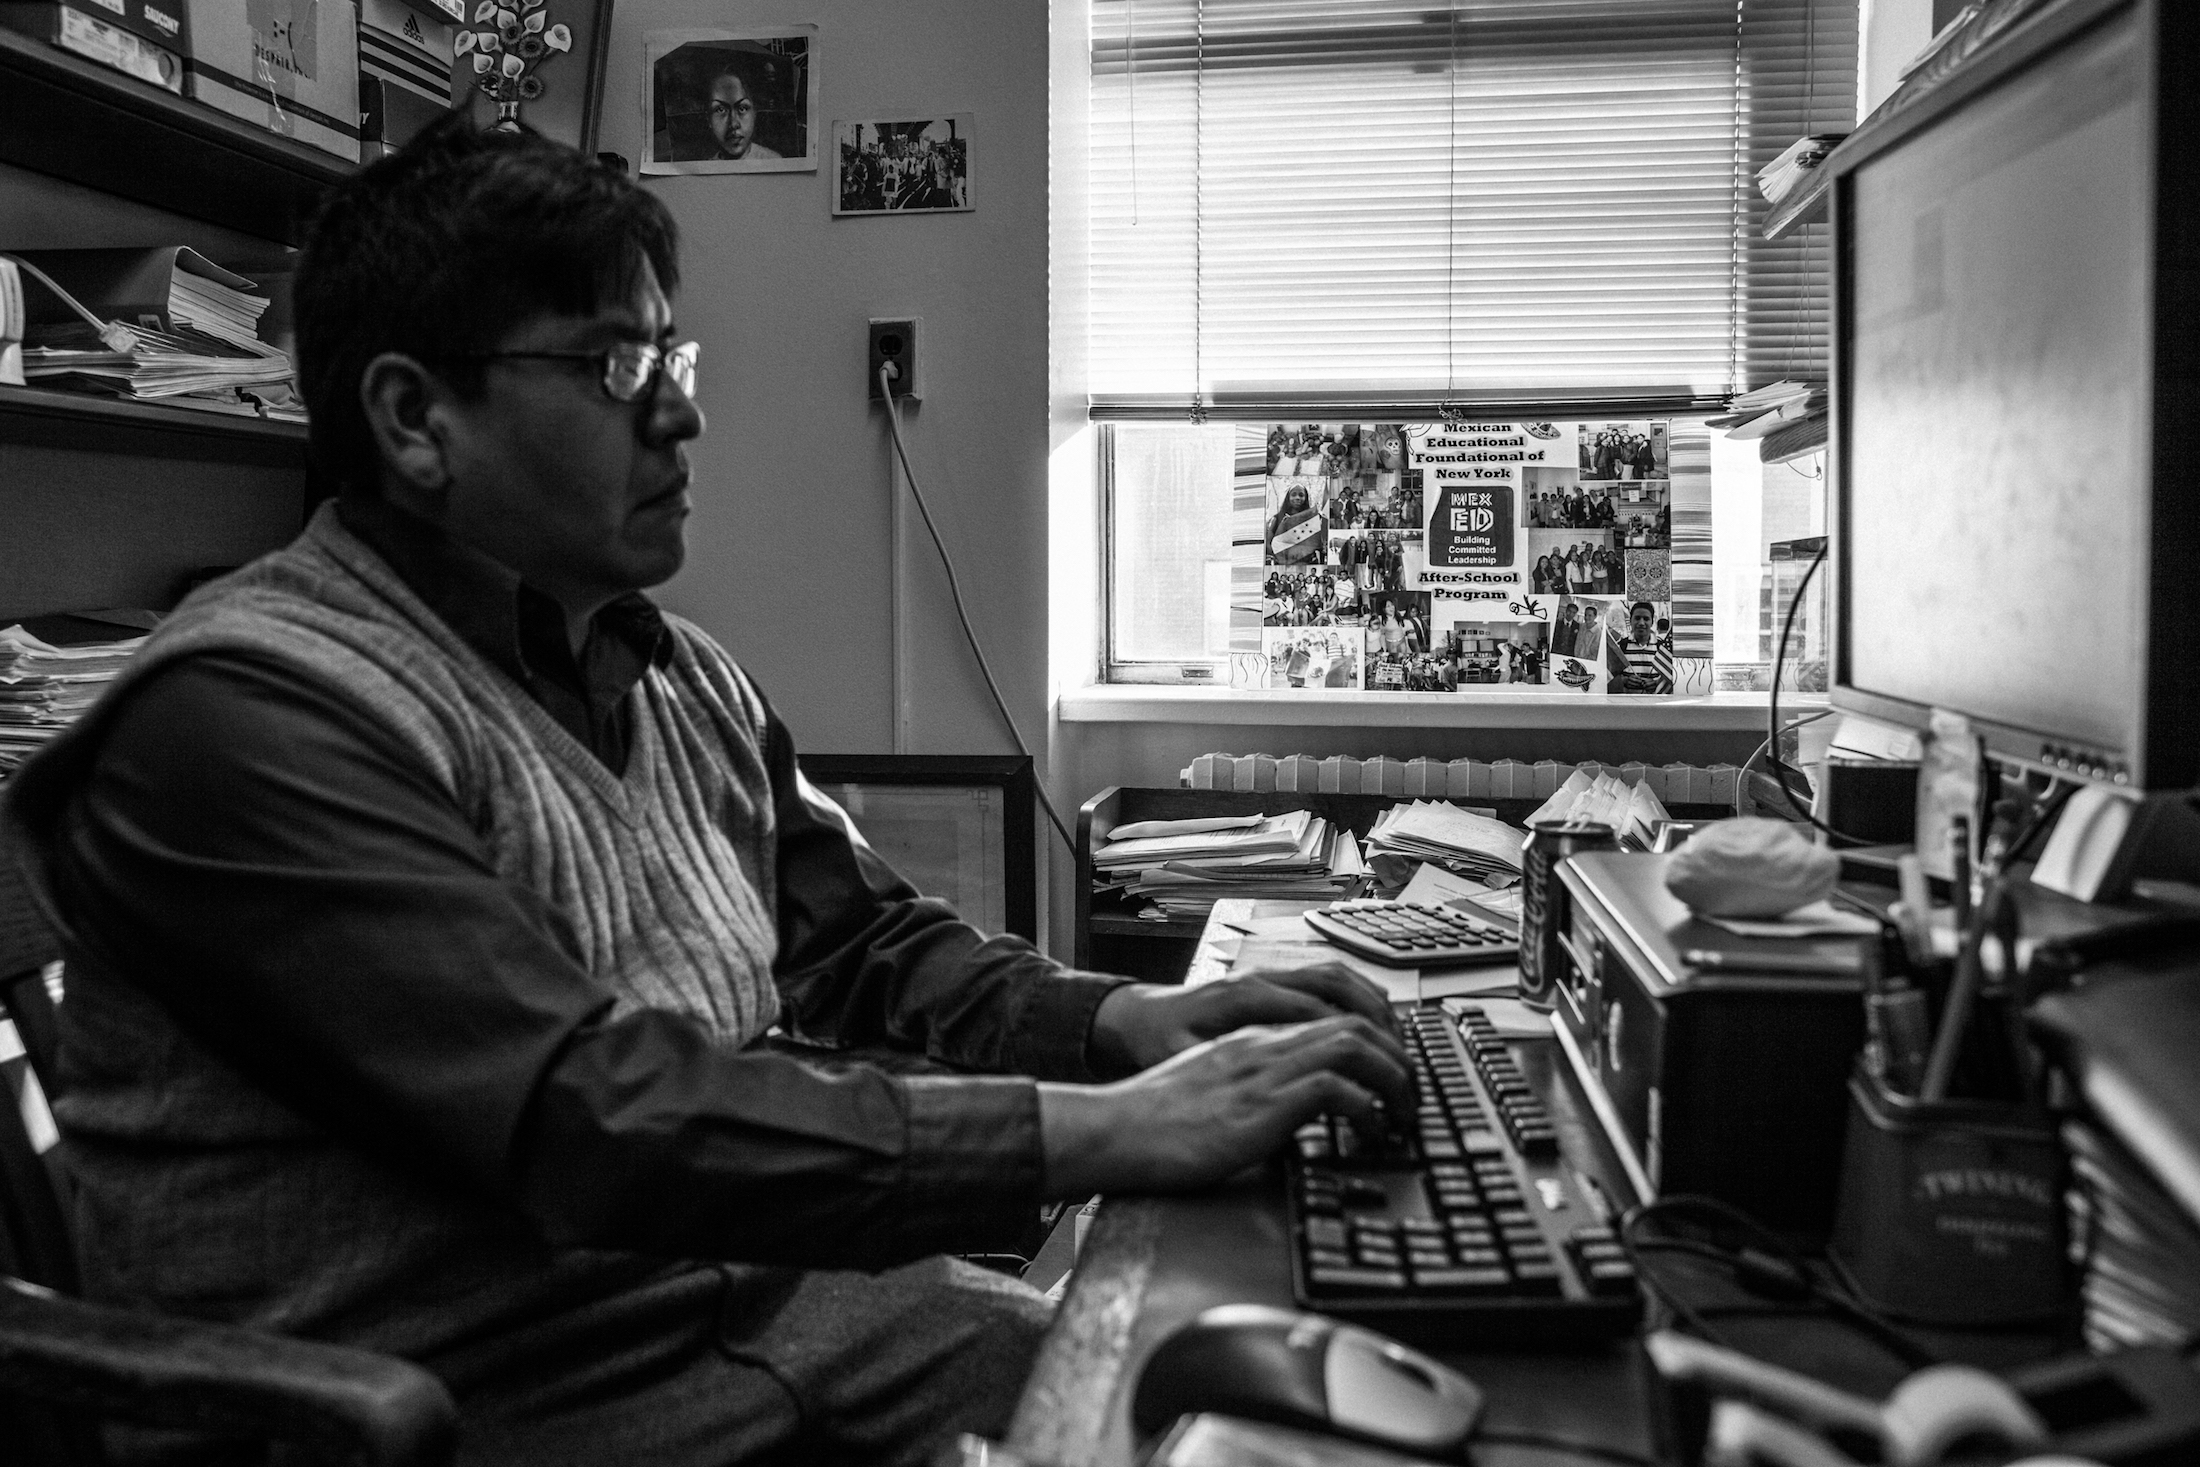 In 2014, Baruch College offered Angelo Cabrera a job as a community and social services specialist. Before he could accept the job, he needed to return to Mexico and declare himself to American immigration and fix his immigration status. (Maite H. Mateo/GroundTruth)